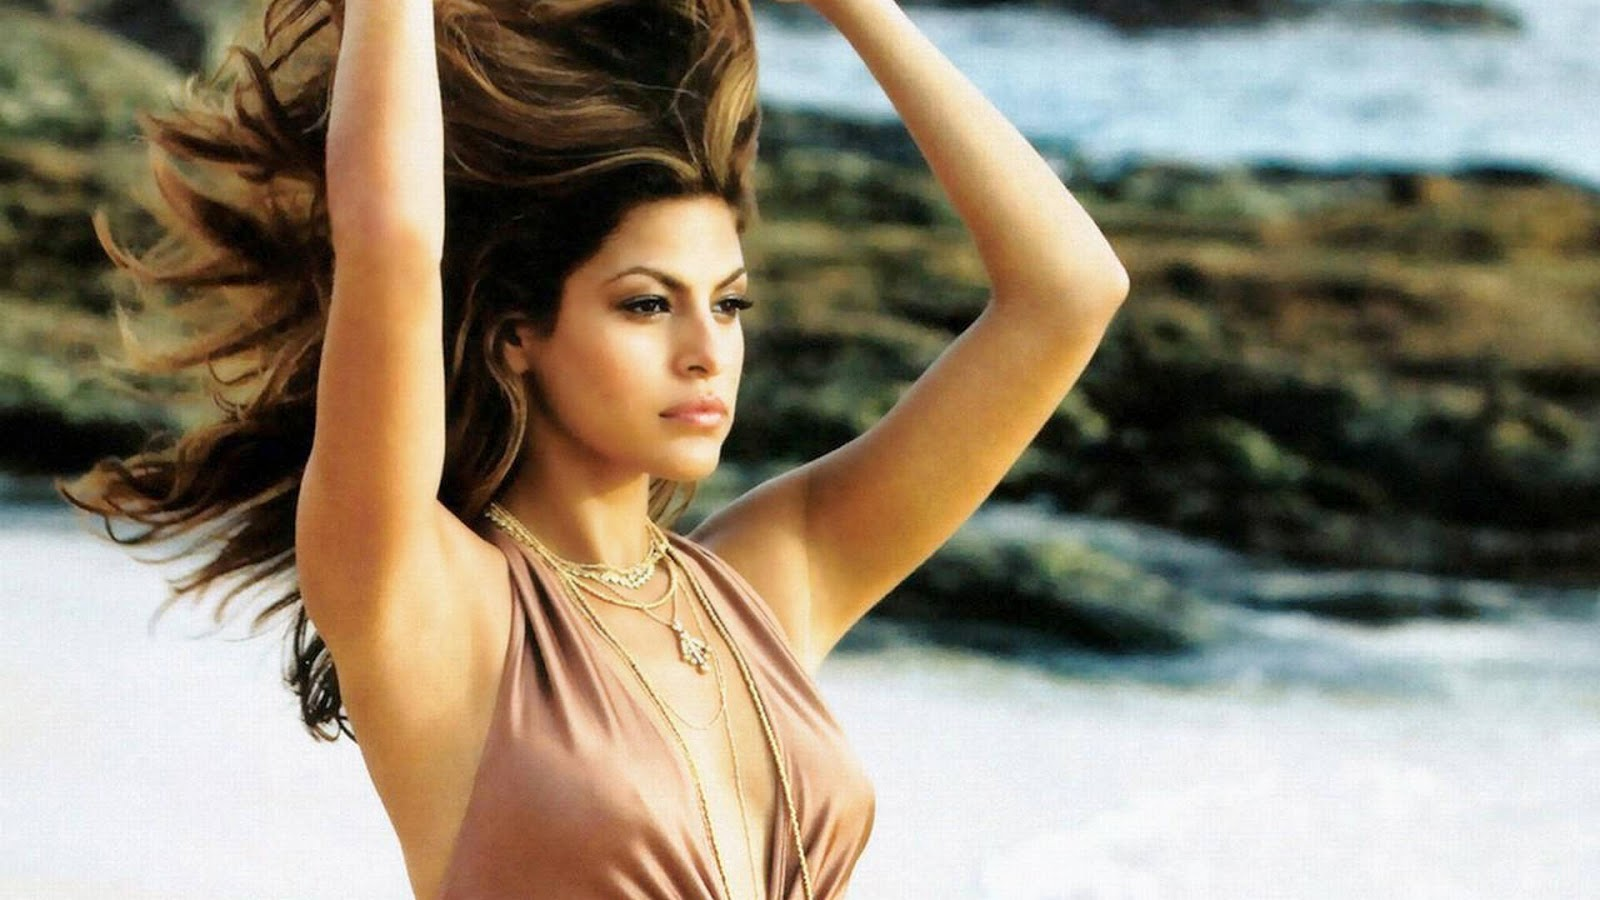 Eva mendes full hd photo with nice hair style